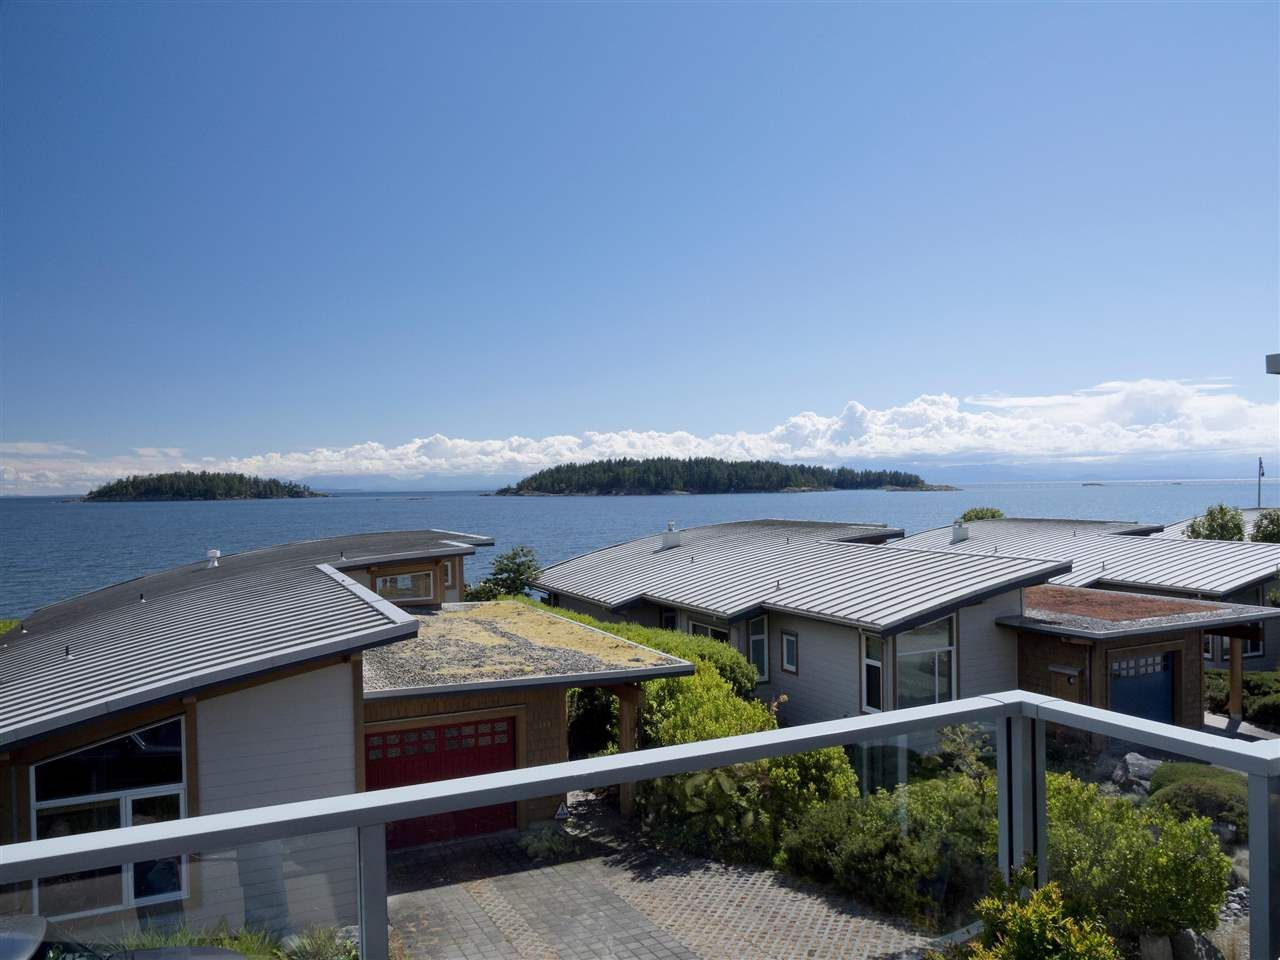 """Main Photo: 6498 WILDFLOWER Place in Sechelt: Sechelt District Townhouse for sale in """"Wakefield Beach - Second Wave"""" (Sunshine Coast)  : MLS®# R2589812"""